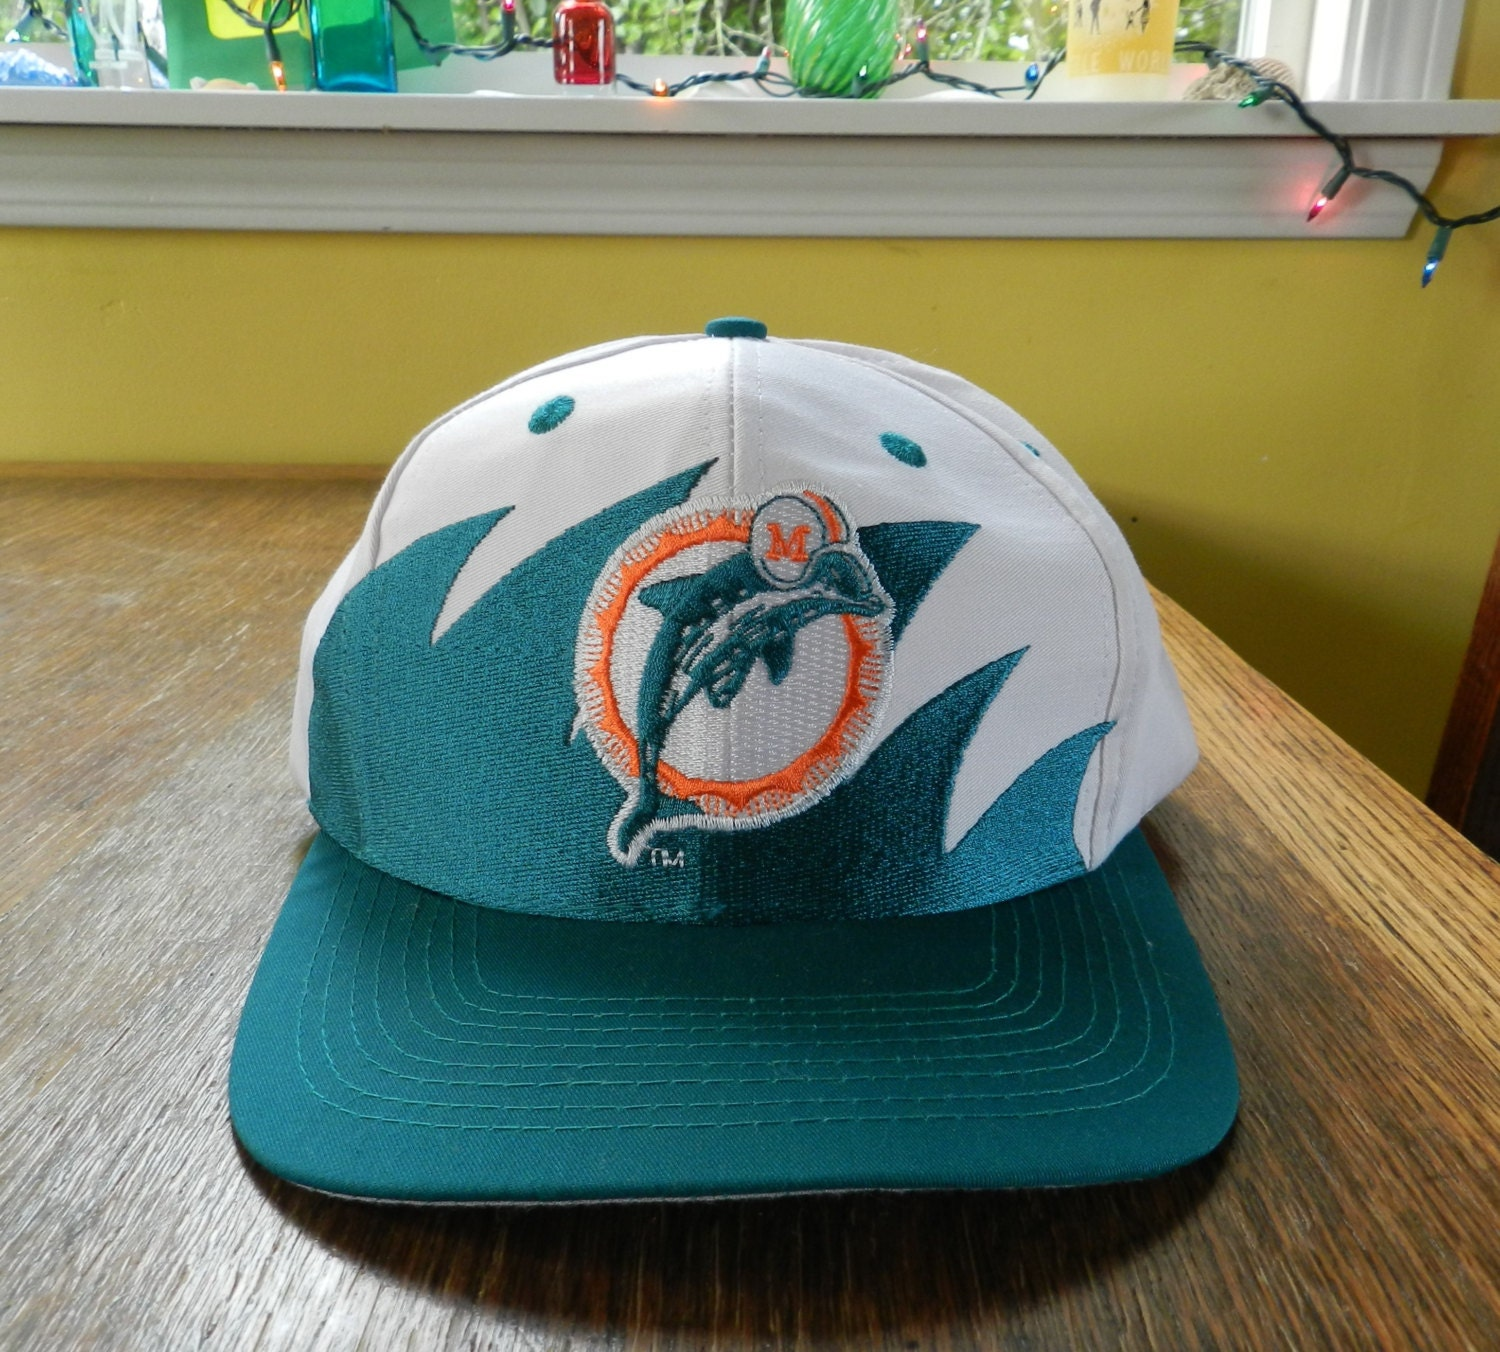 fa37fbb4f ... inexpensive vintage miami dolphins hat snapback cap 90s logo 7  sharktooth design one size mint splash